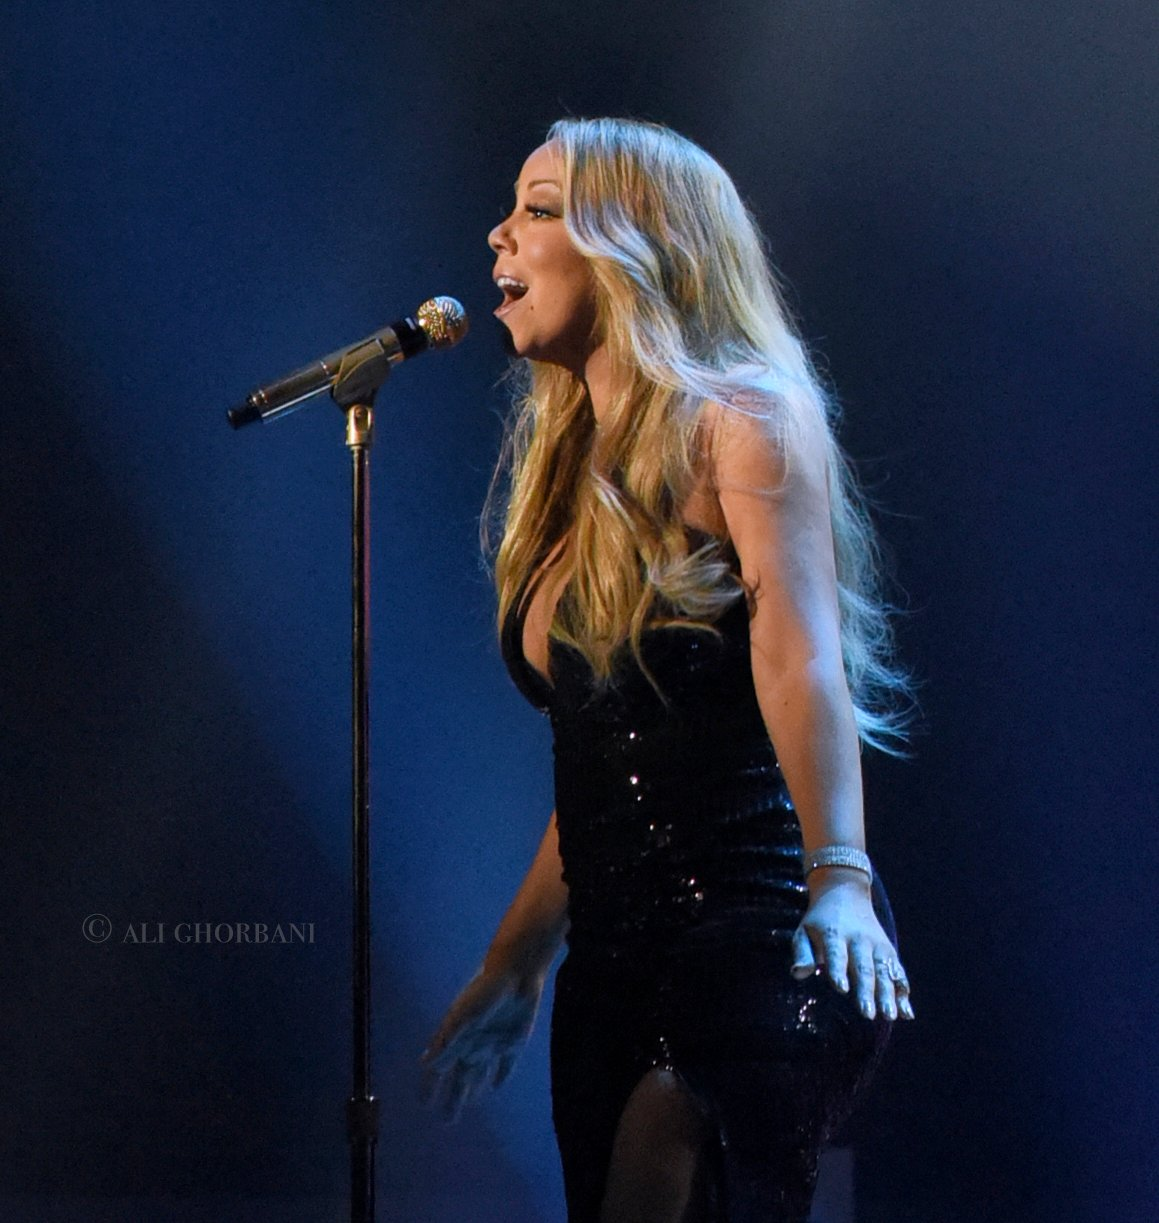 Events Photographer Hong Kong - Mariah Carey